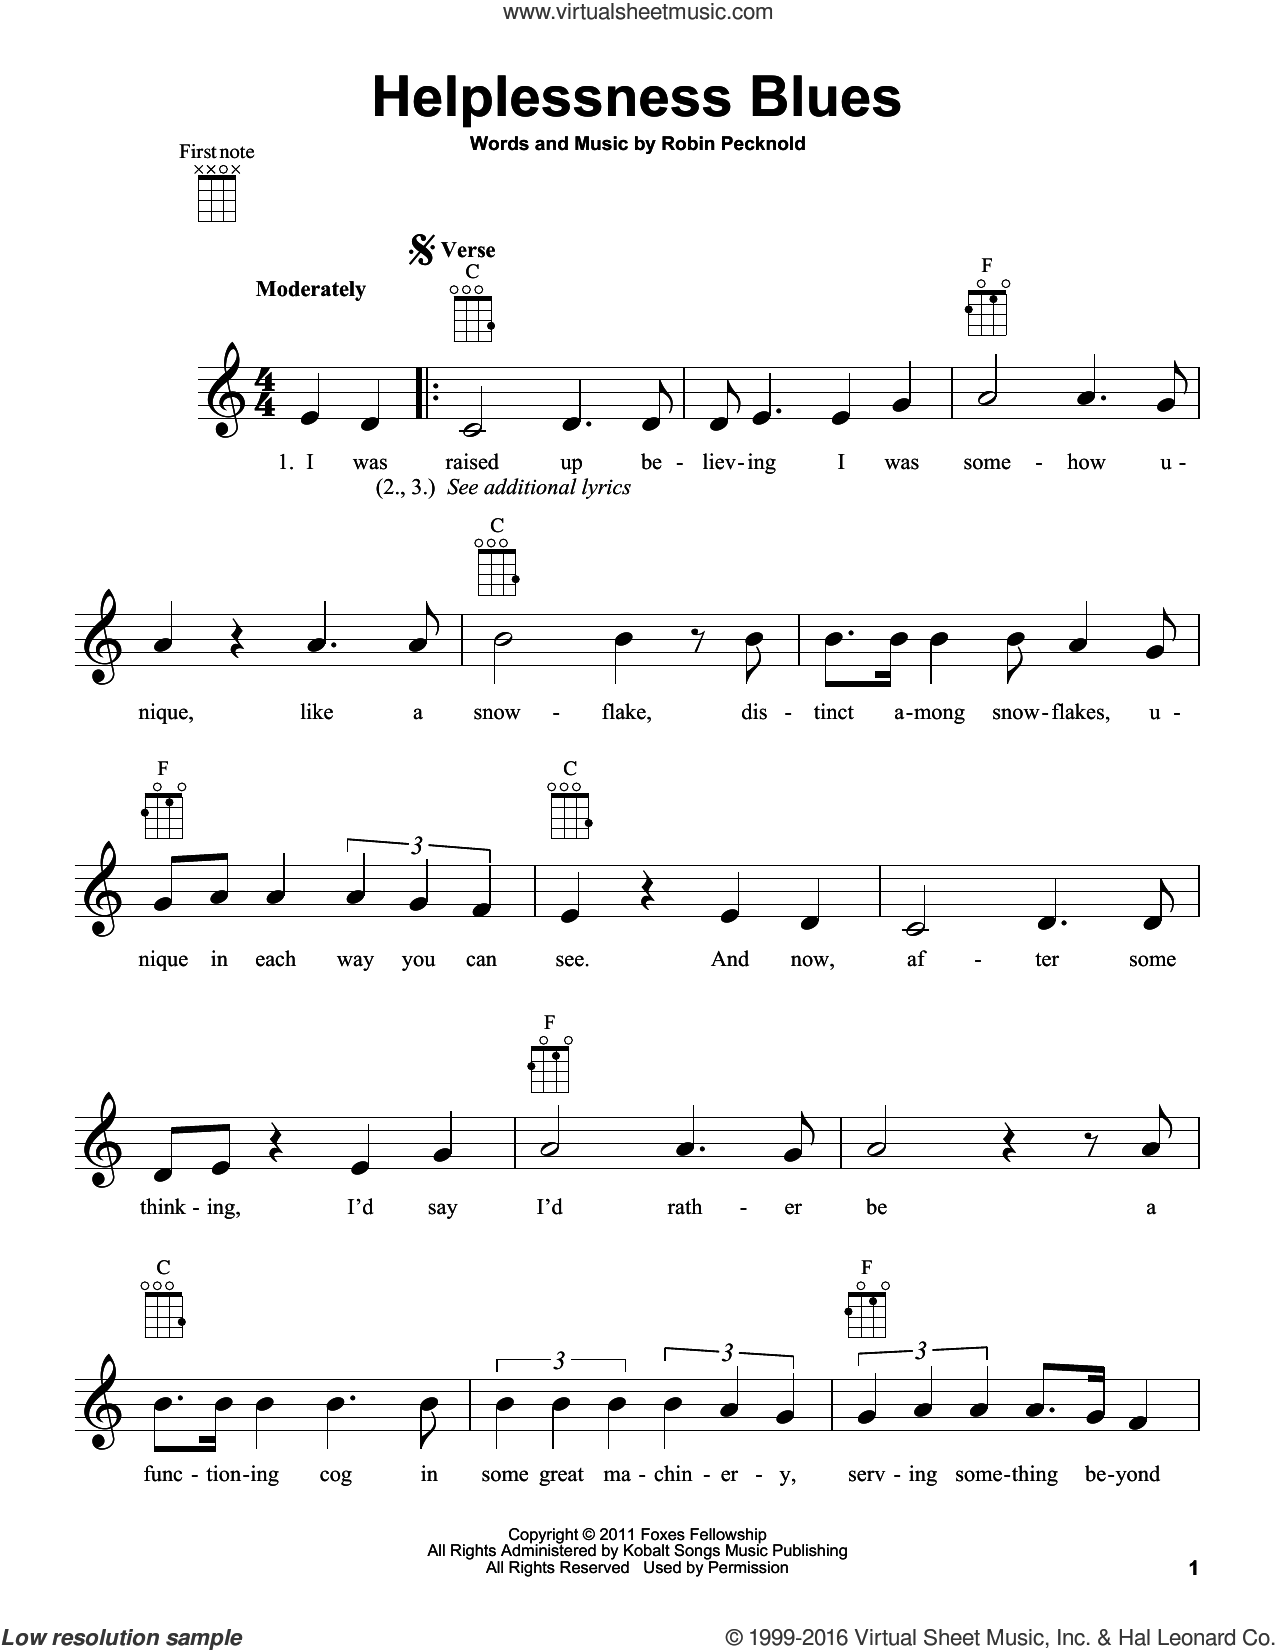 Helplessness Blues sheet music for ukulele by Fleet Foxes and Robin Pecknold, intermediate skill level